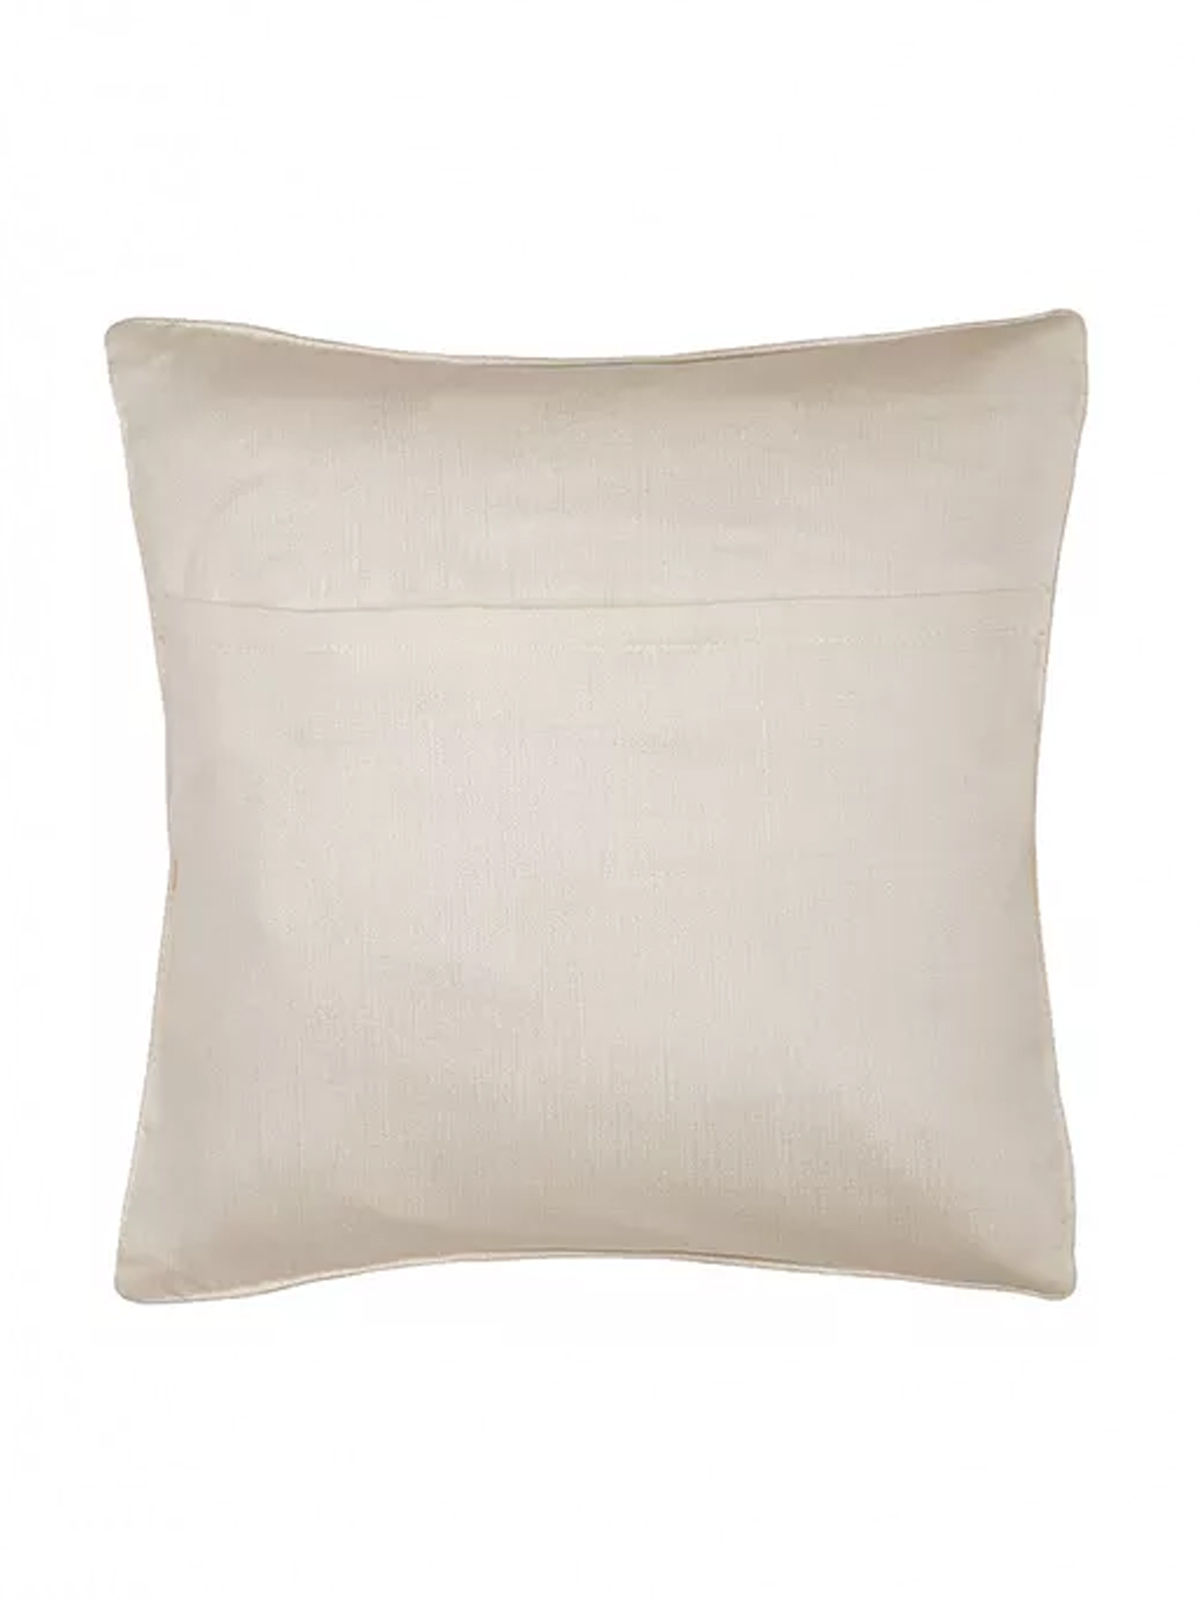 White-Yellow Embroidered Silk Cushion Cover with Marigold Motif